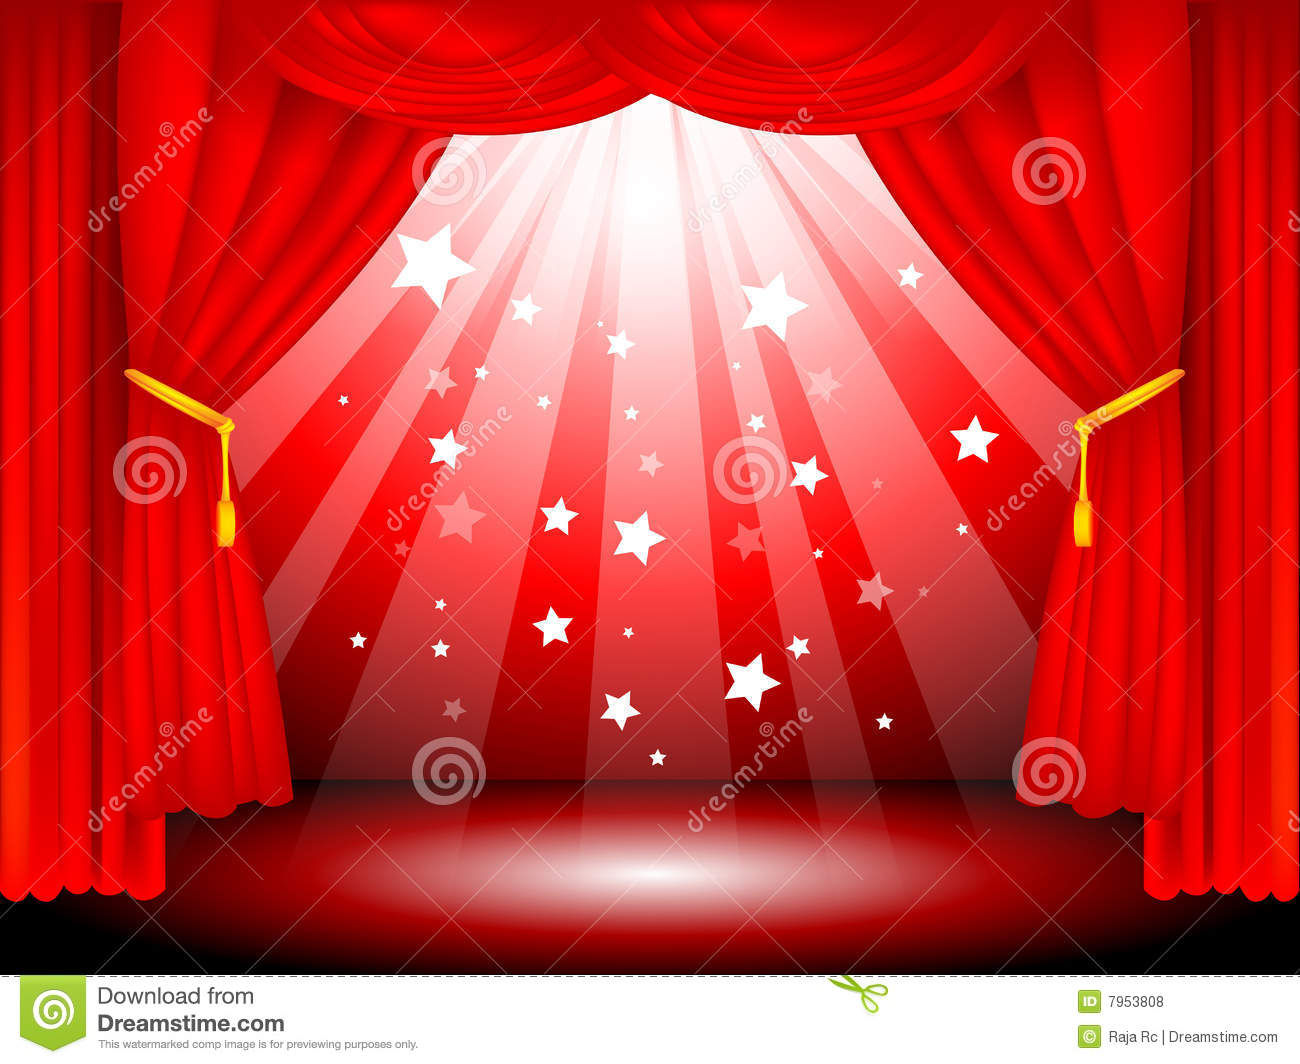 Blue stage curtains blue stage curtain vector free vector in - Background Black Curtains Red Stage Vector Velvet Curtain